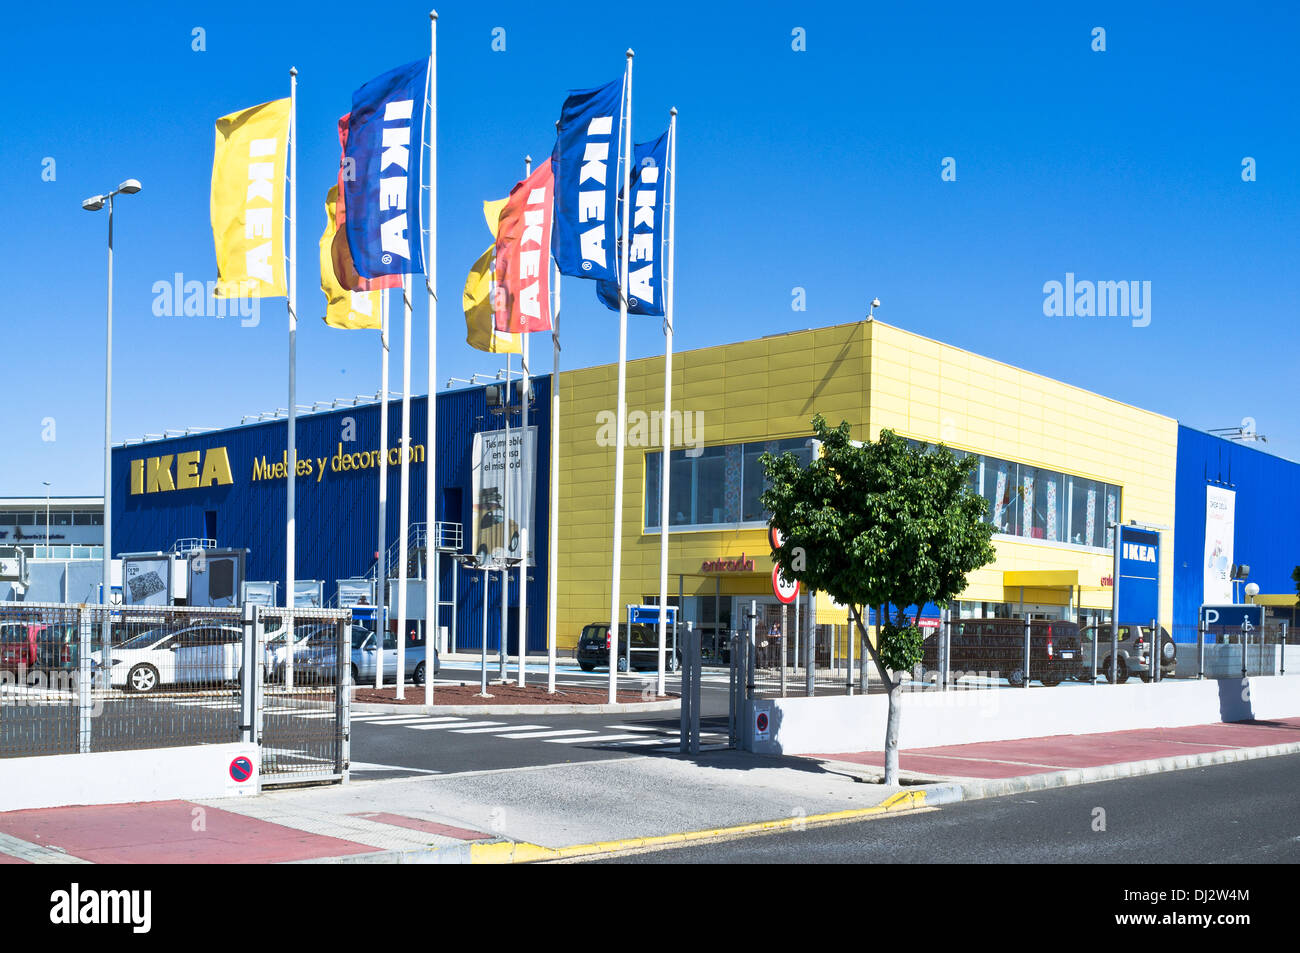 ikea dh superstore europe drapeaux et ikea shop entr e avant madrid espagne exterior banque d. Black Bedroom Furniture Sets. Home Design Ideas